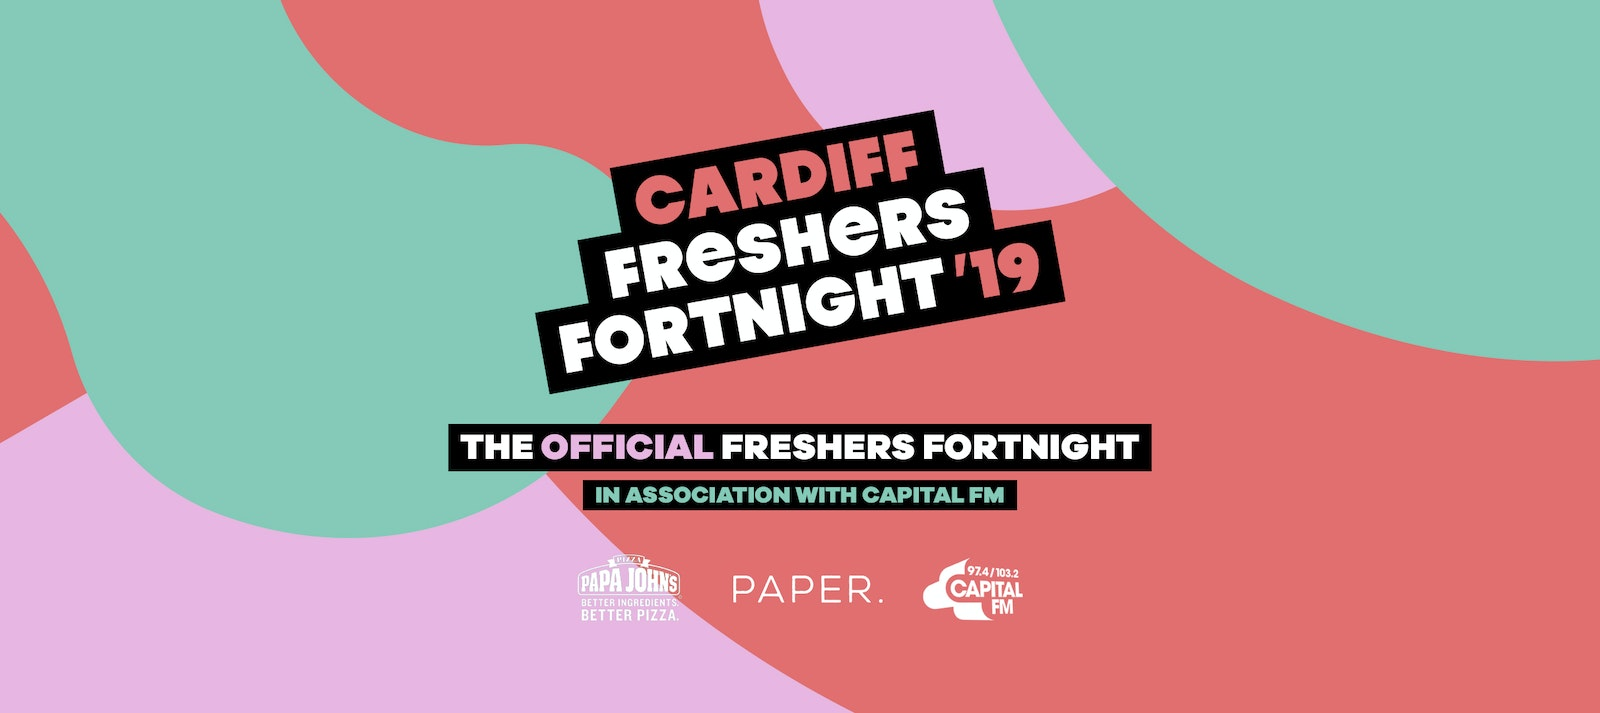 Official Cardiff Freshers Fortnight 2019